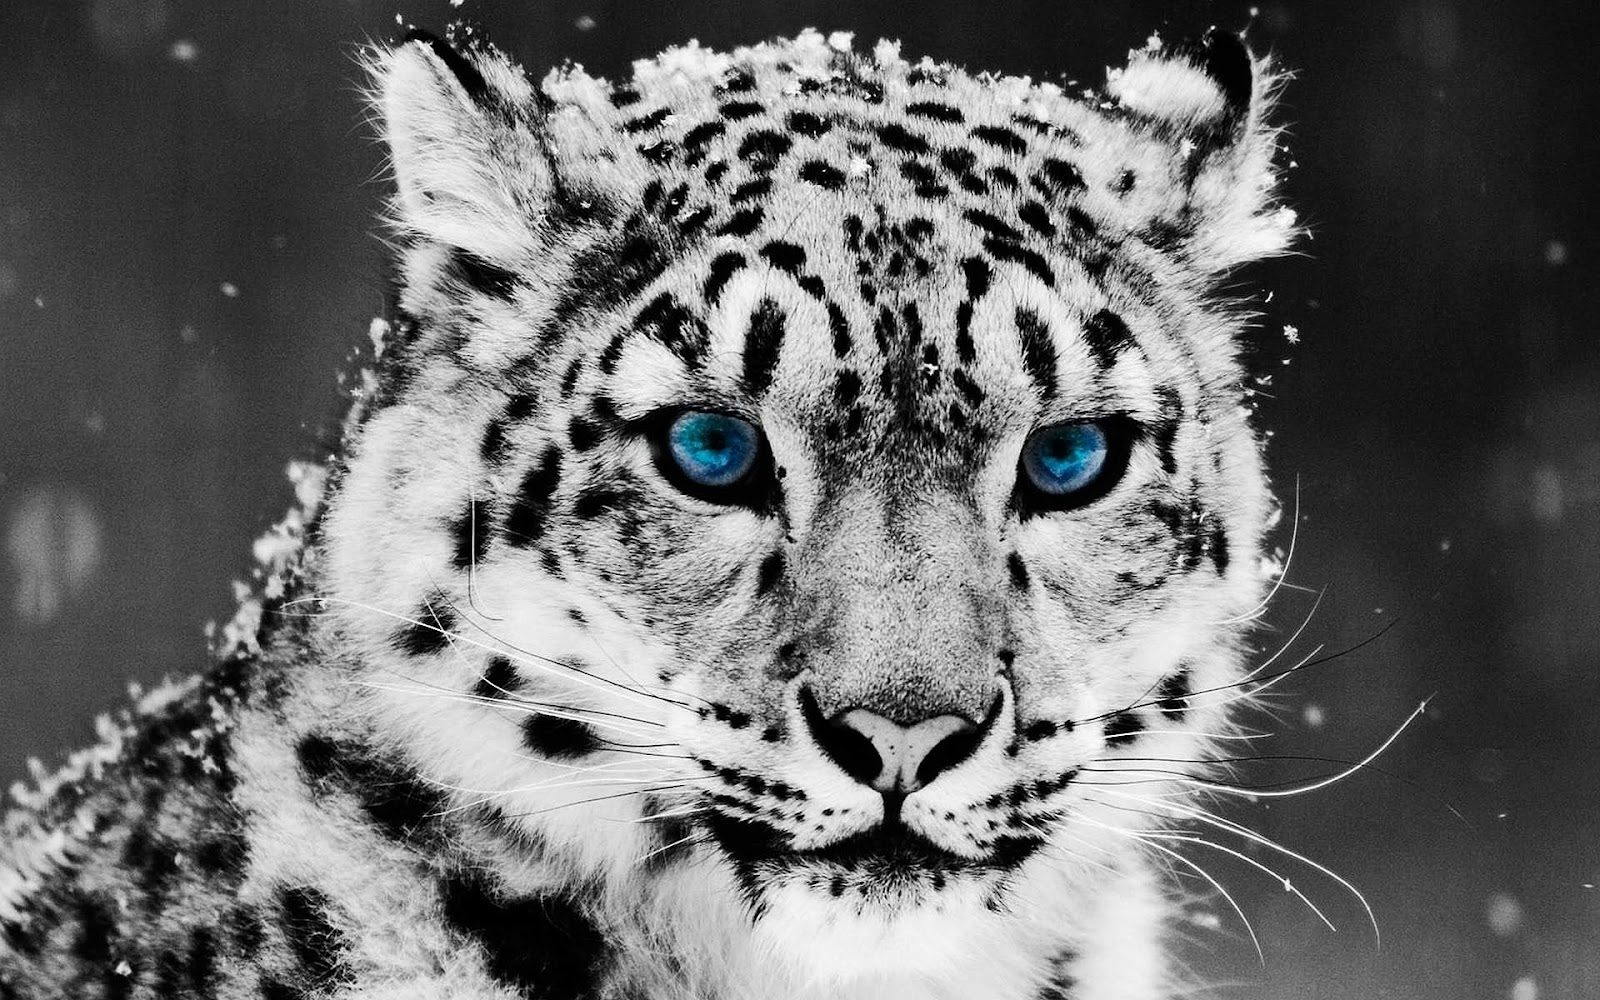 snow-leopard-wallpaper-13.jpg